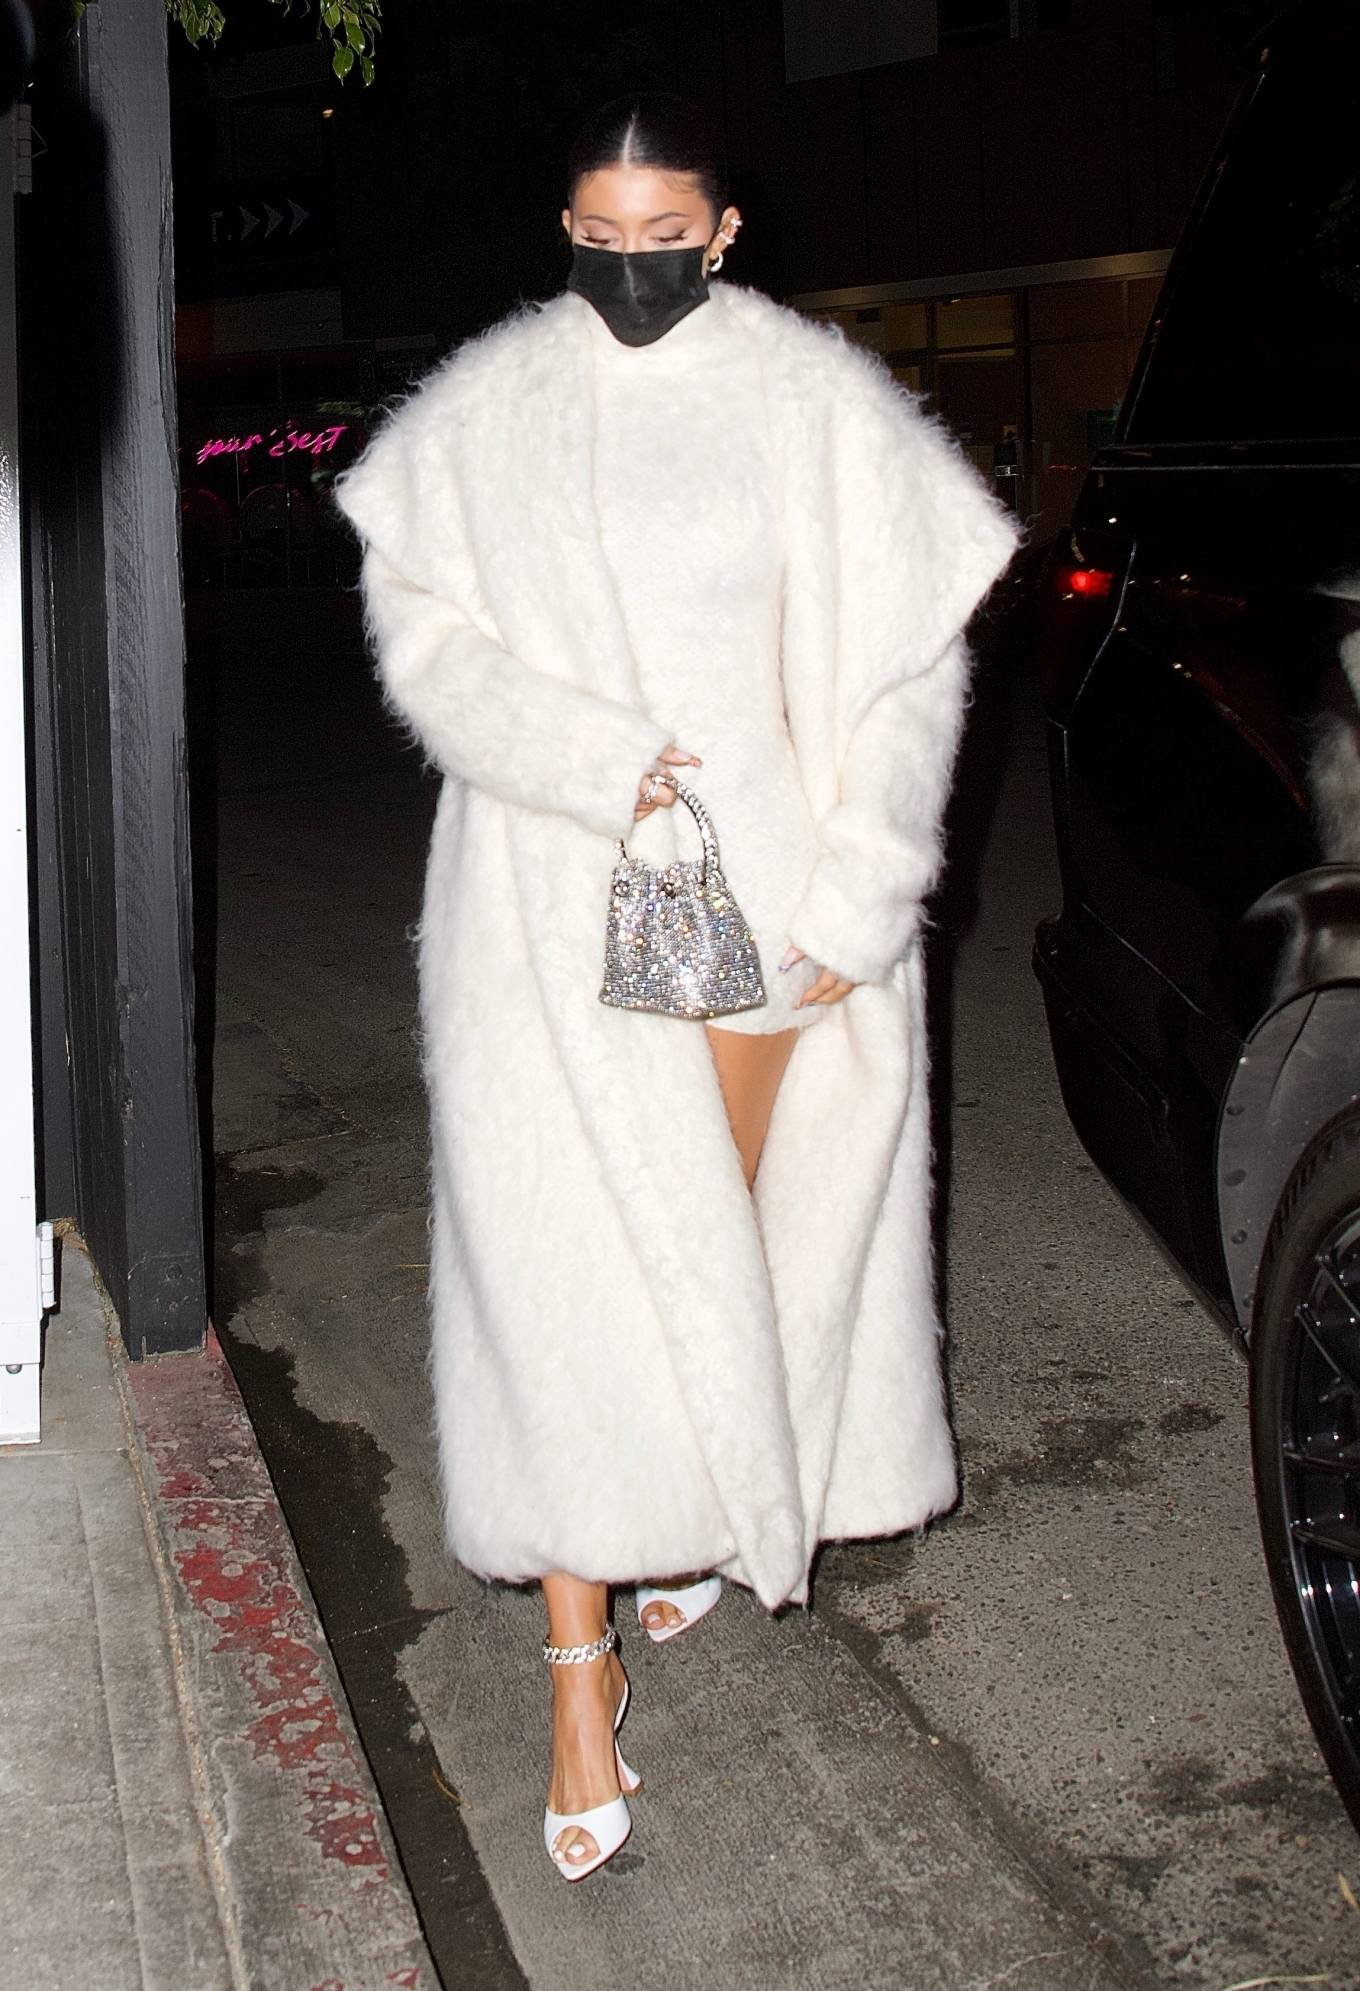 Kylie Jenner rocking a voluminous white hooded fur coat with a knit material, full sleeves and shawl collar